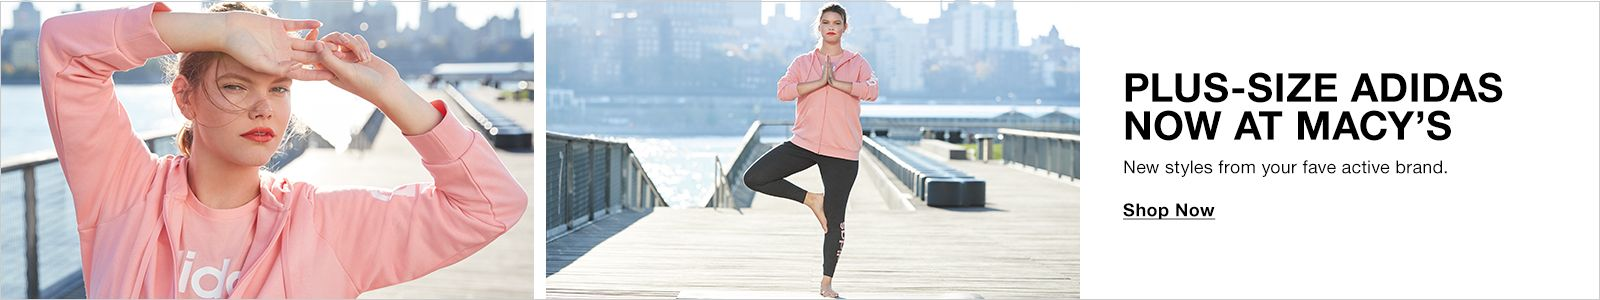 Plus-Size Adidas Now at Macy's, New styles from your fave active brand, Shop Now